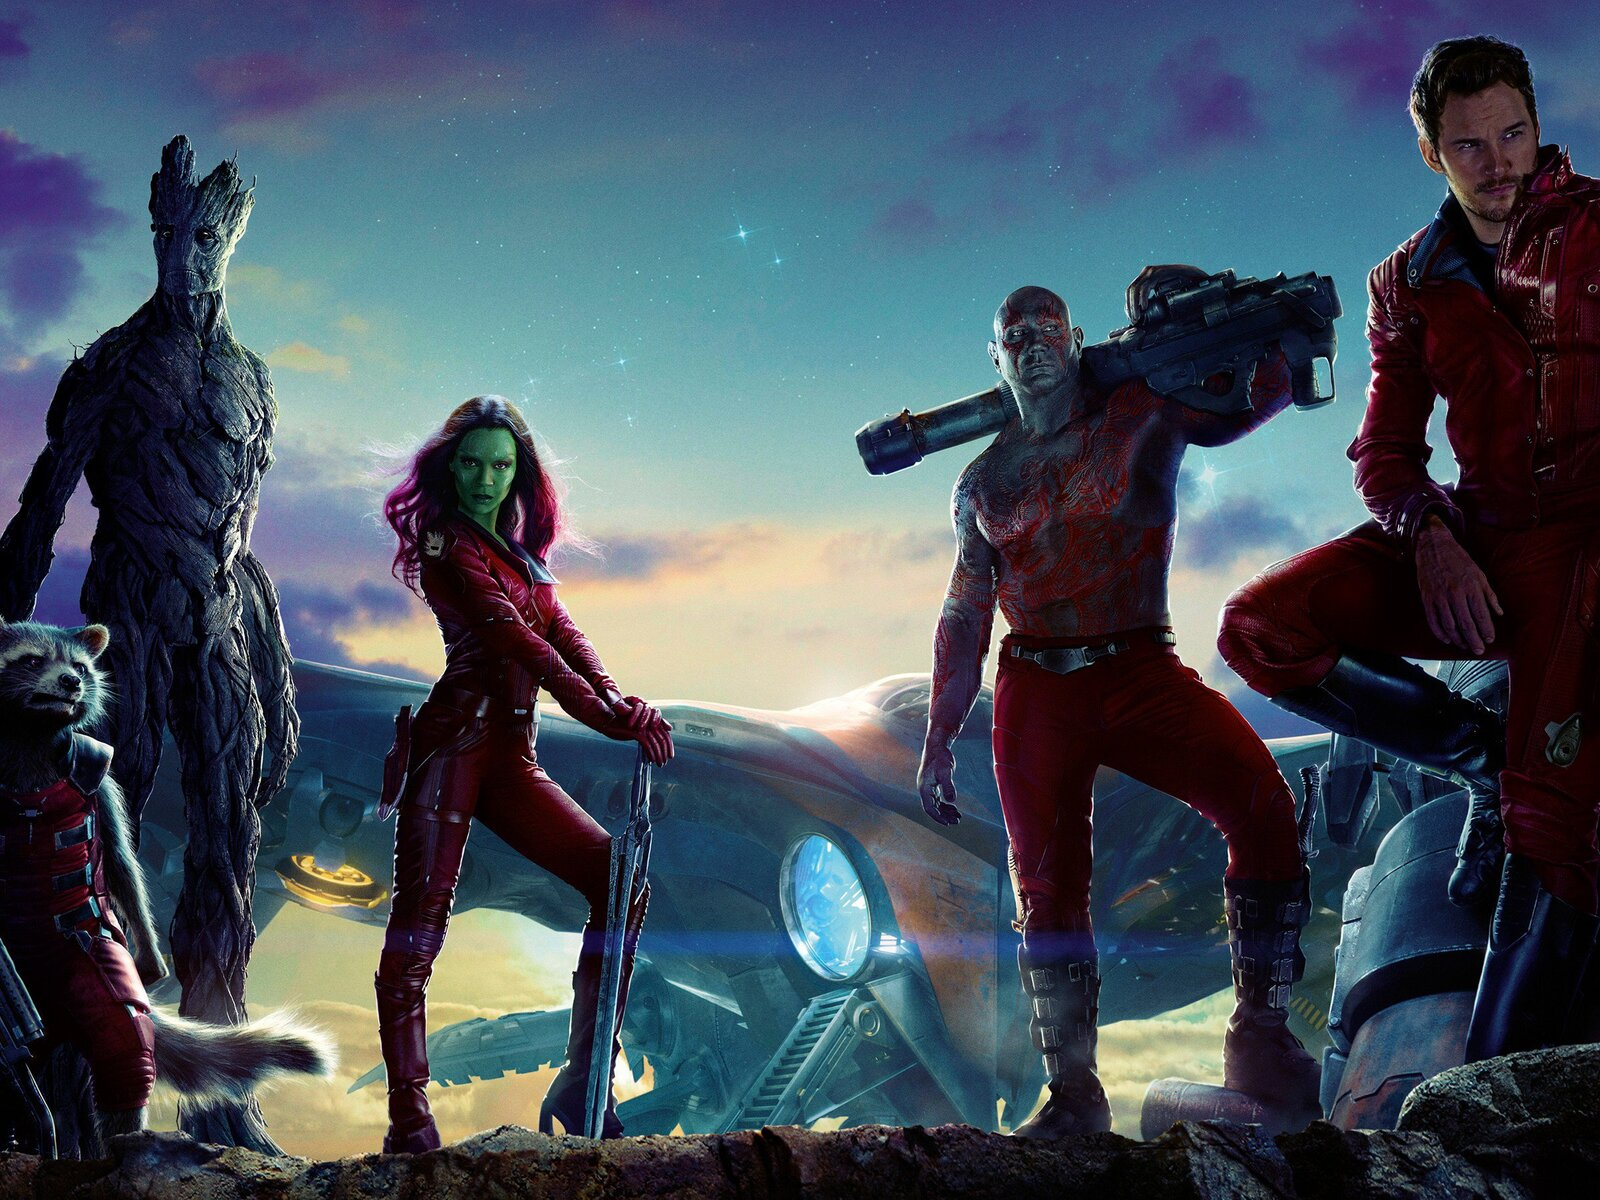 1600x1200 Guardians Of The Galaxy Pc 1600x1200 Resolution Hd 4k